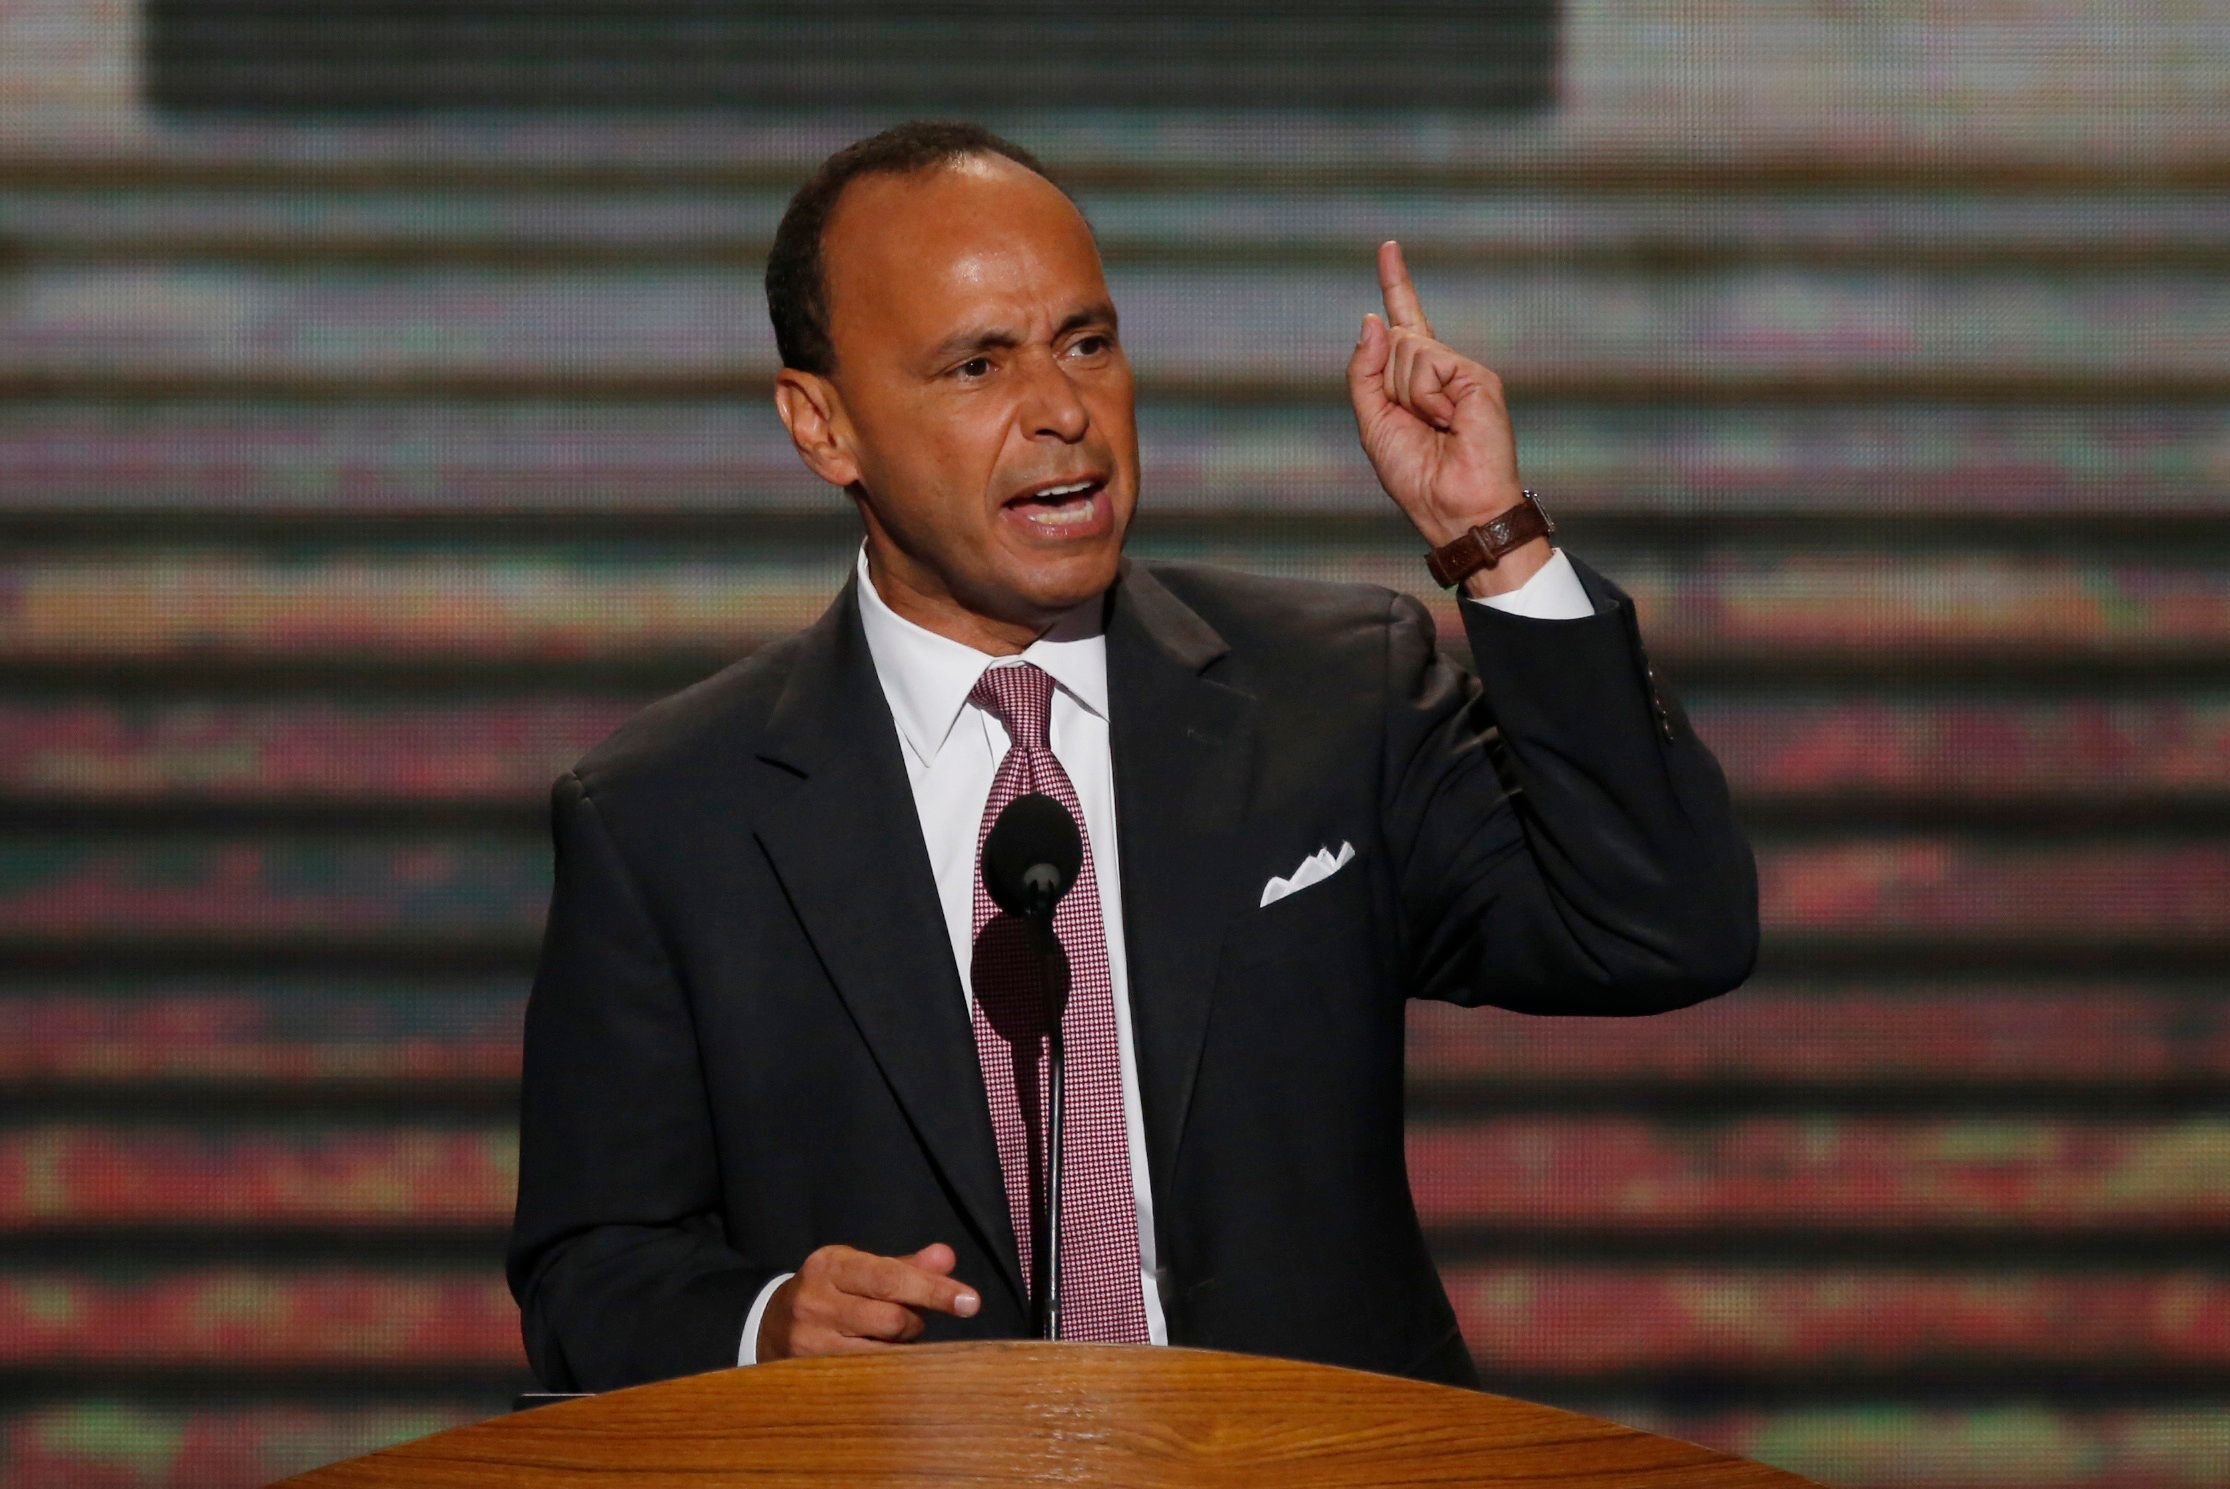 U.S. Rep. Luis Gutierrez (D-IL) addresses delegates during the second session of the Democratic National Convention in Charlotte, North Carolina, September 5, 2012.   REUTERS/Jason Reed (UNITED STATES  - Tags: POLITICS ELECTIONS)